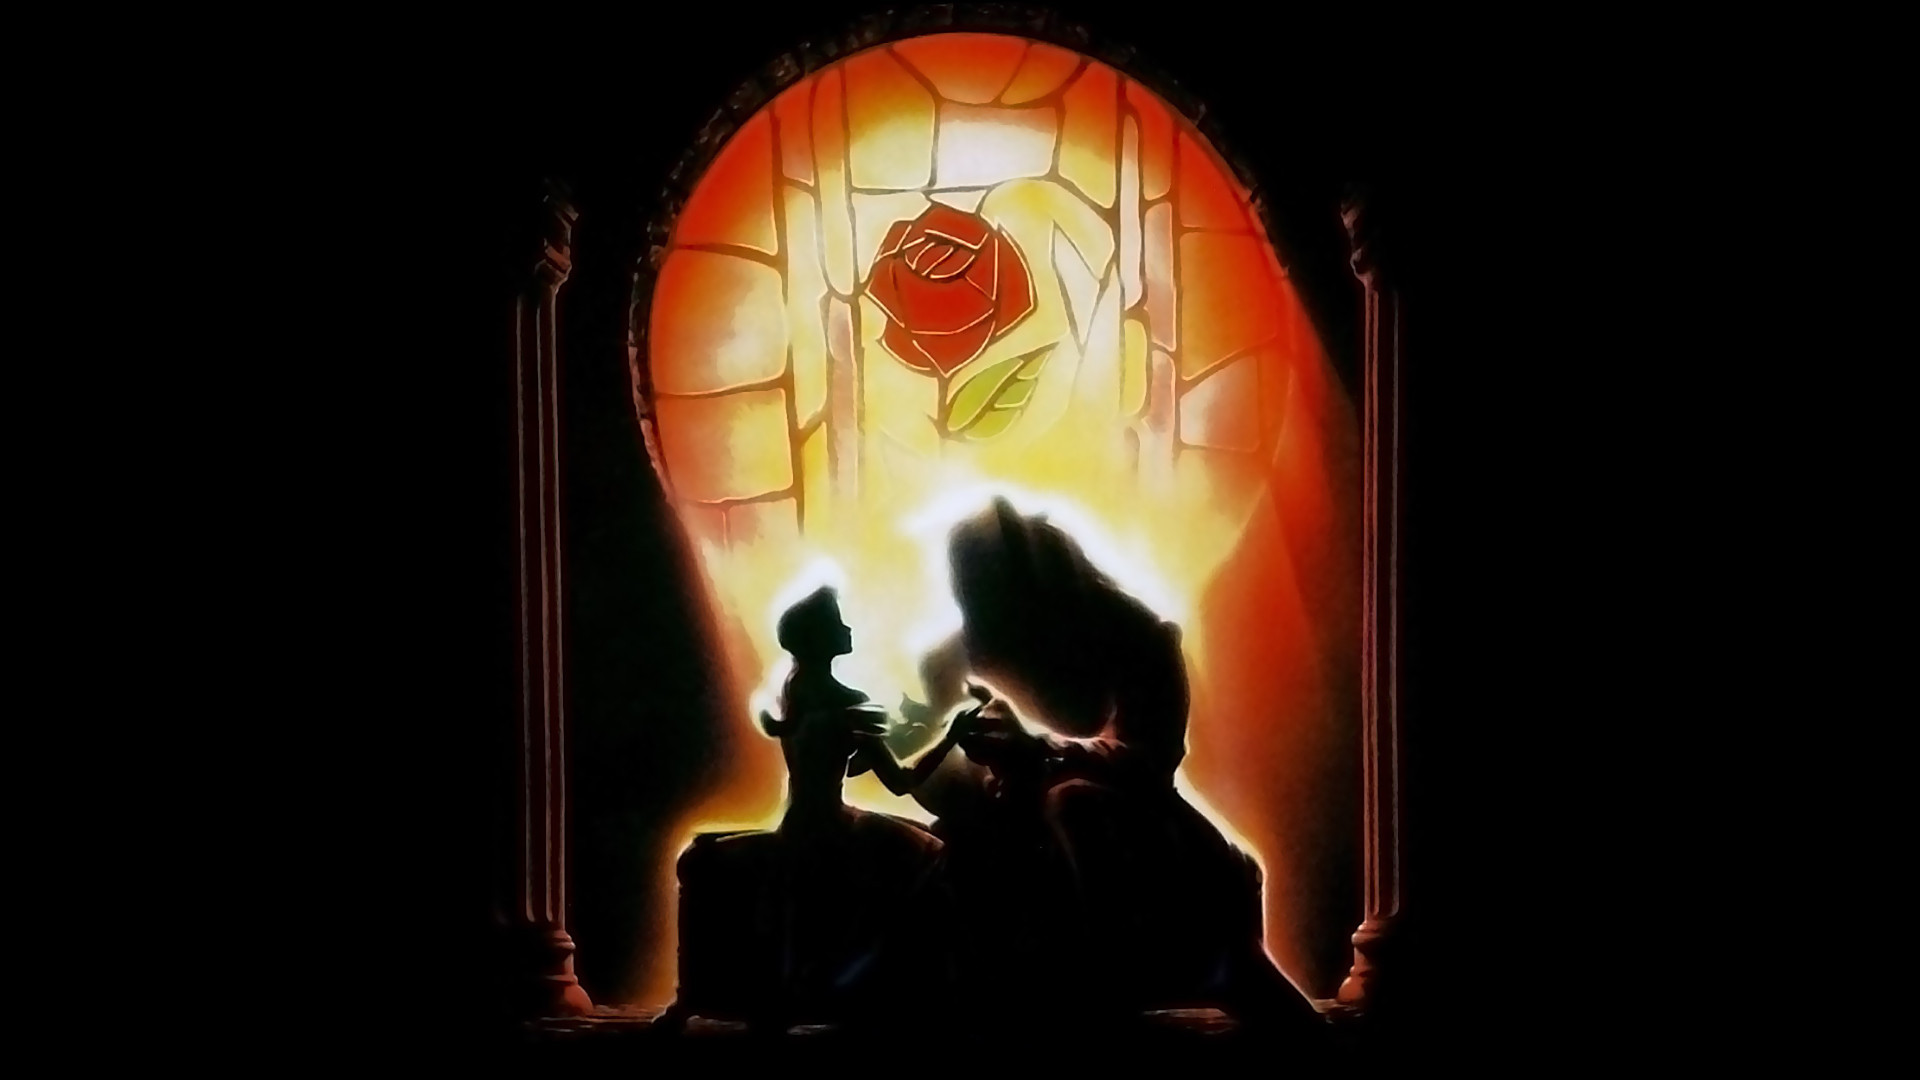 Beauty And The Beast Wallpapers High Quality